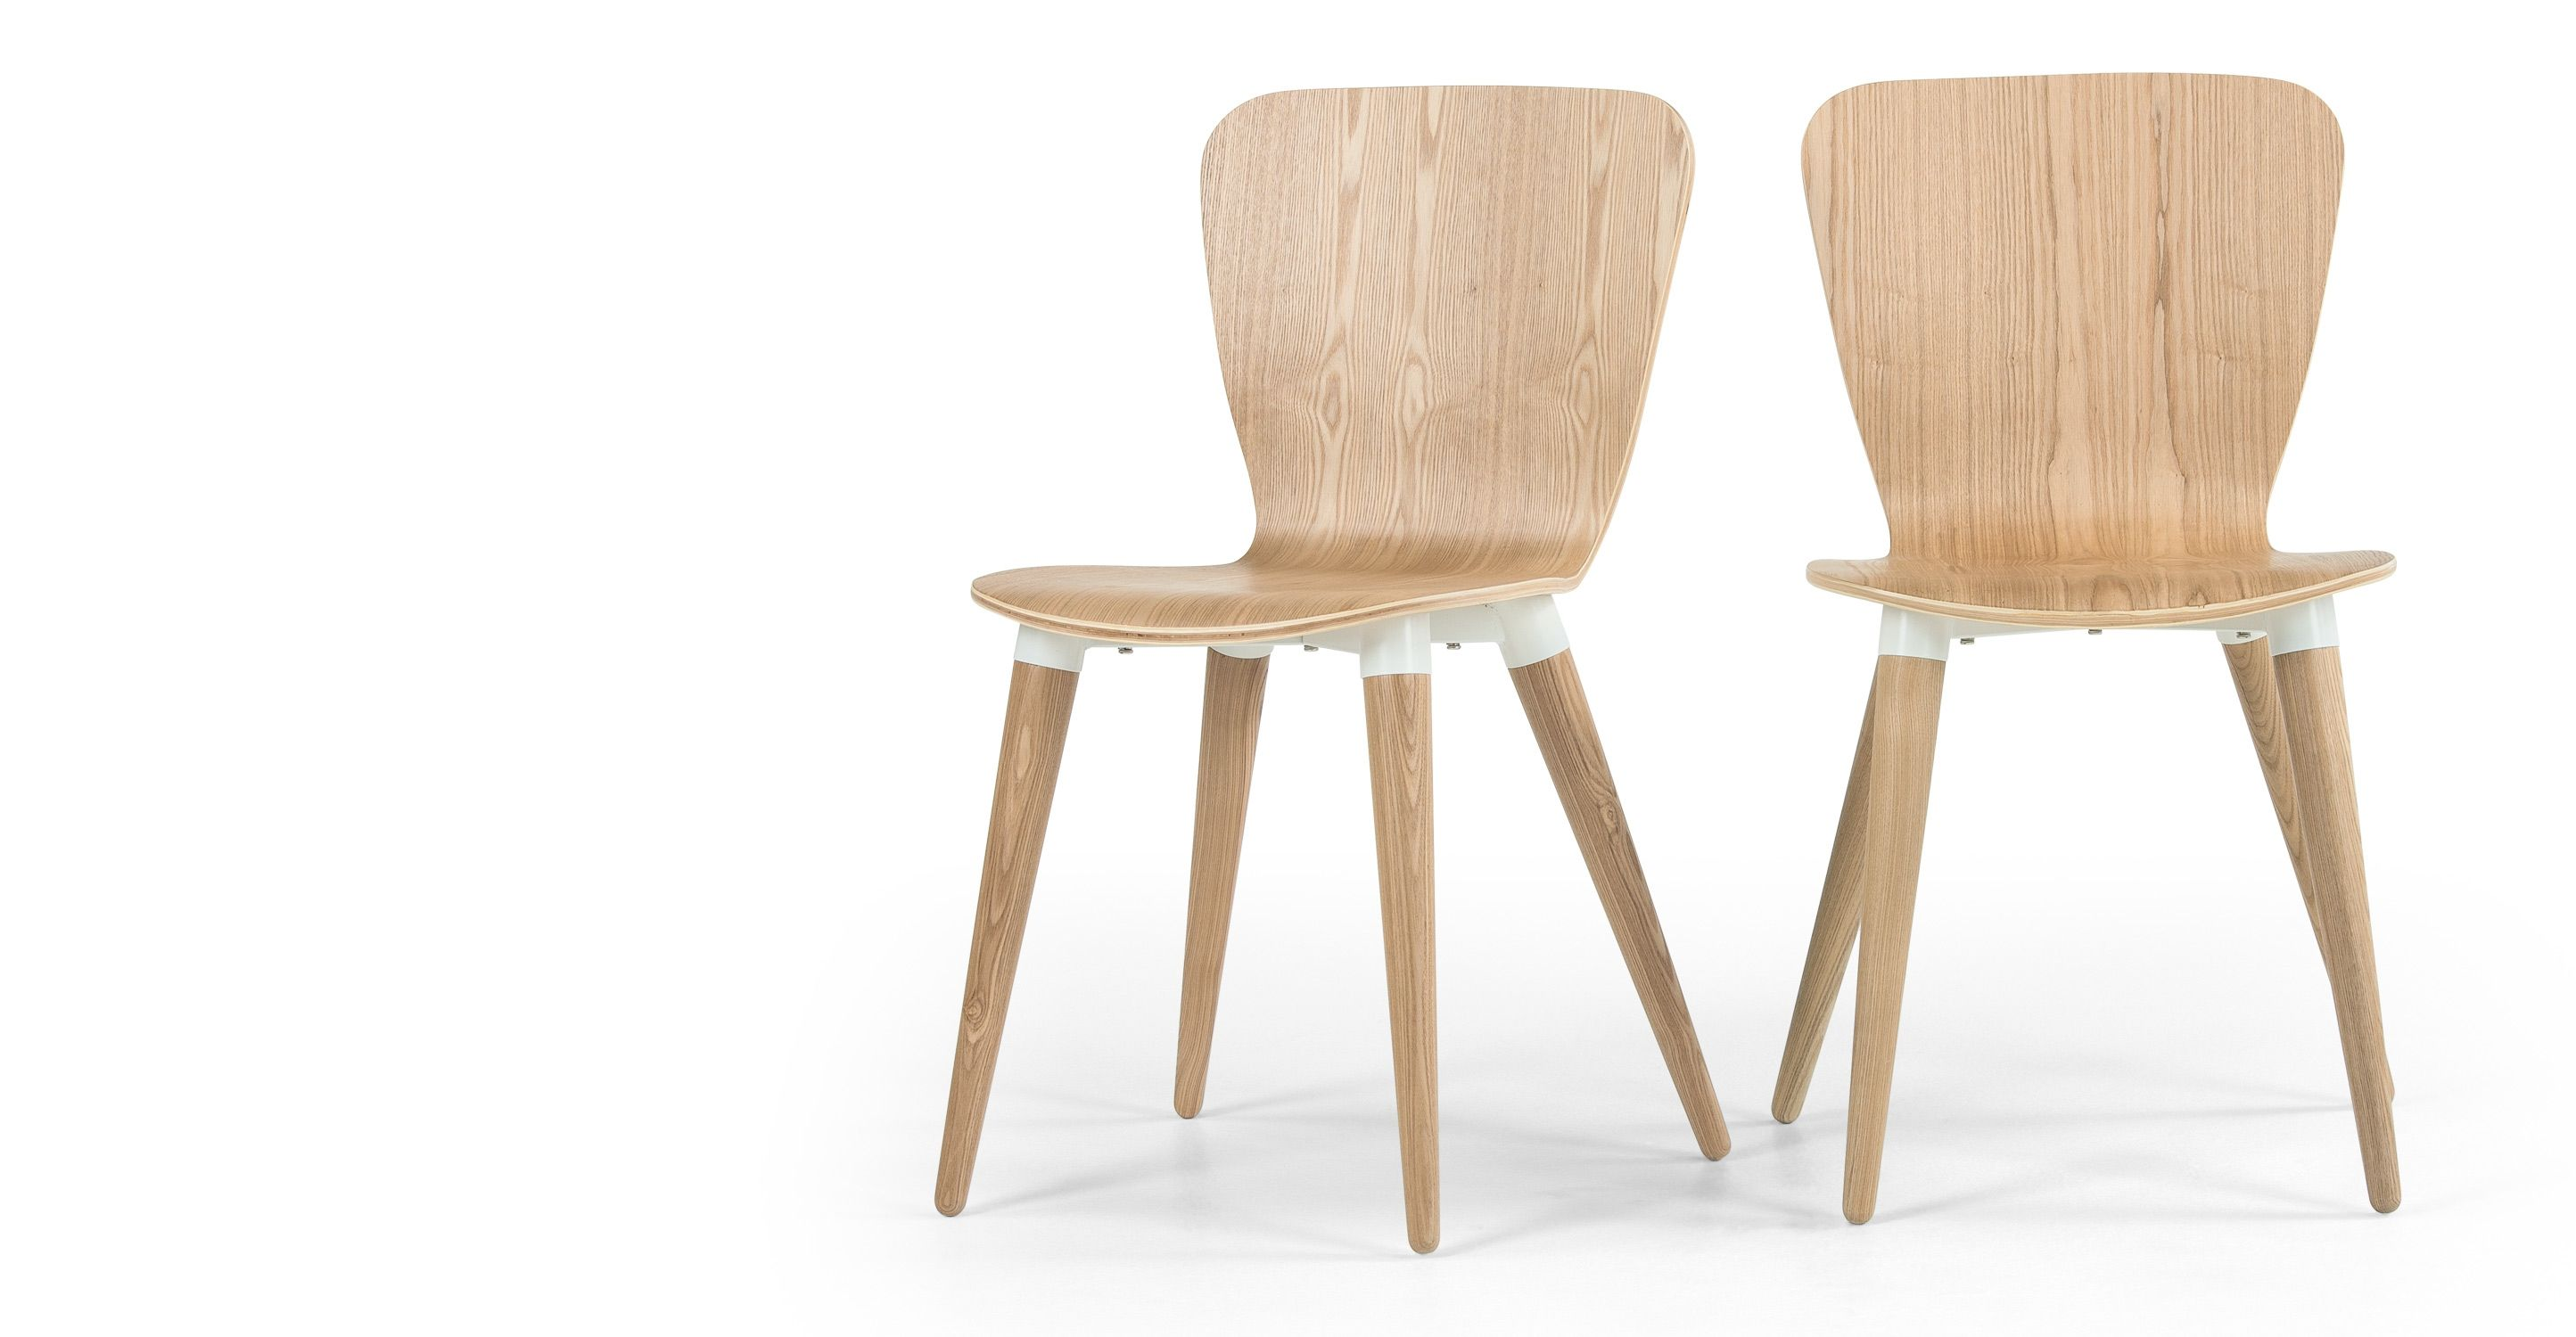 Chaises Design Metal Et Bois Dogewood Set Of 2 Edelweiss Dining Chairs Ash And White Flat Sedie